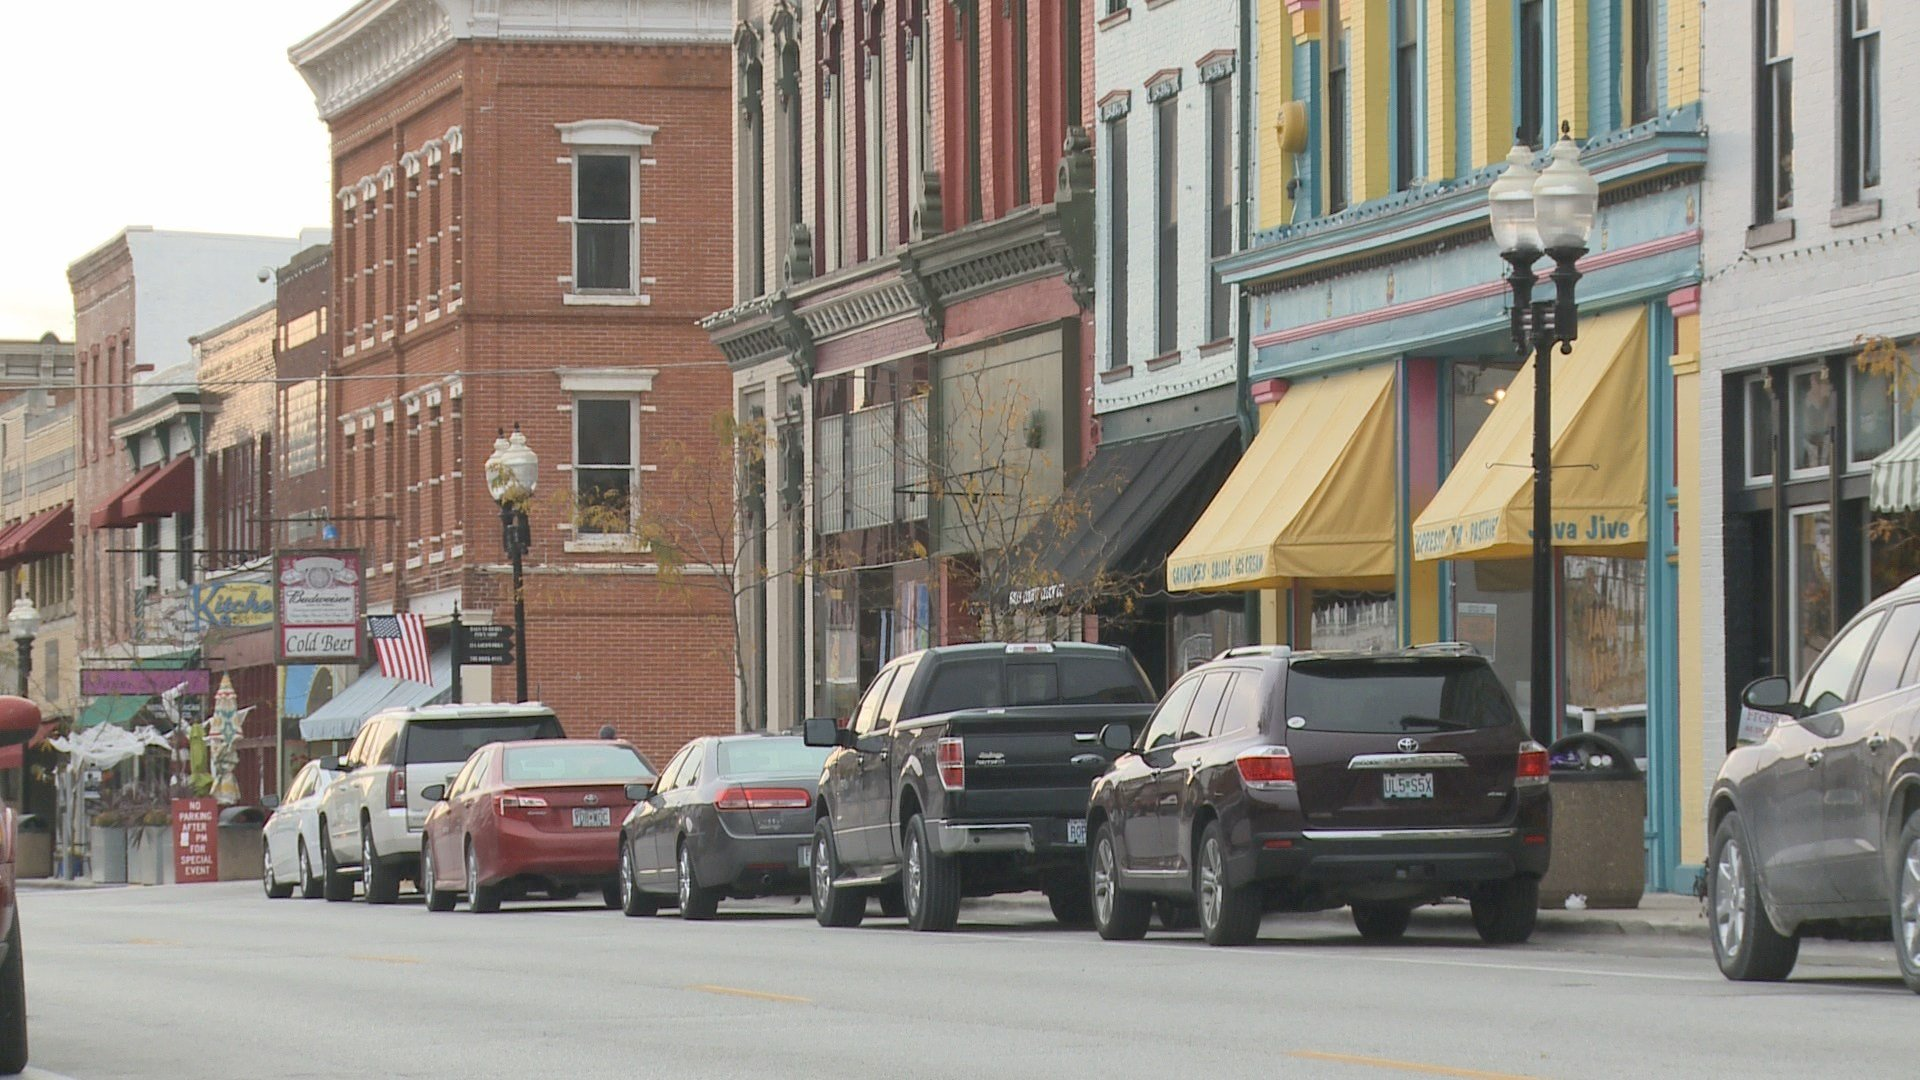 Downtown Hannibal